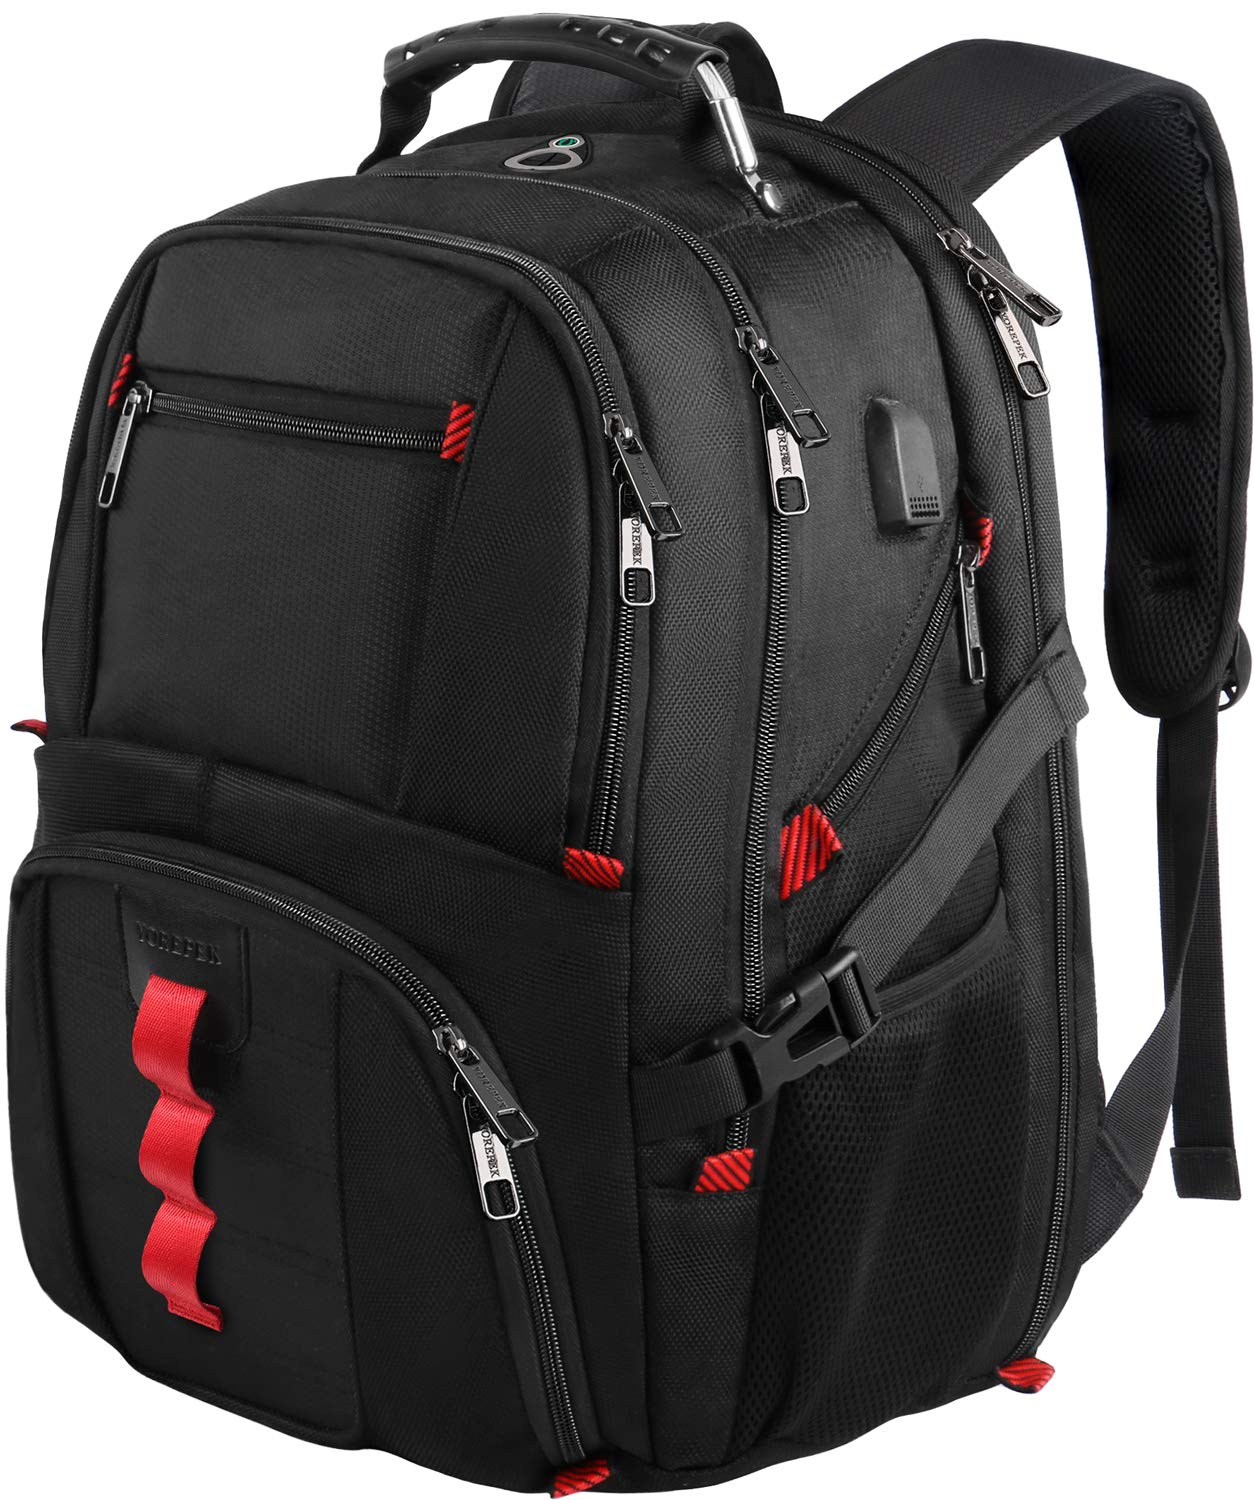 0236a9cecfc4 Travel Laptop Backpack Amazon- Fenix Toulouse Handball